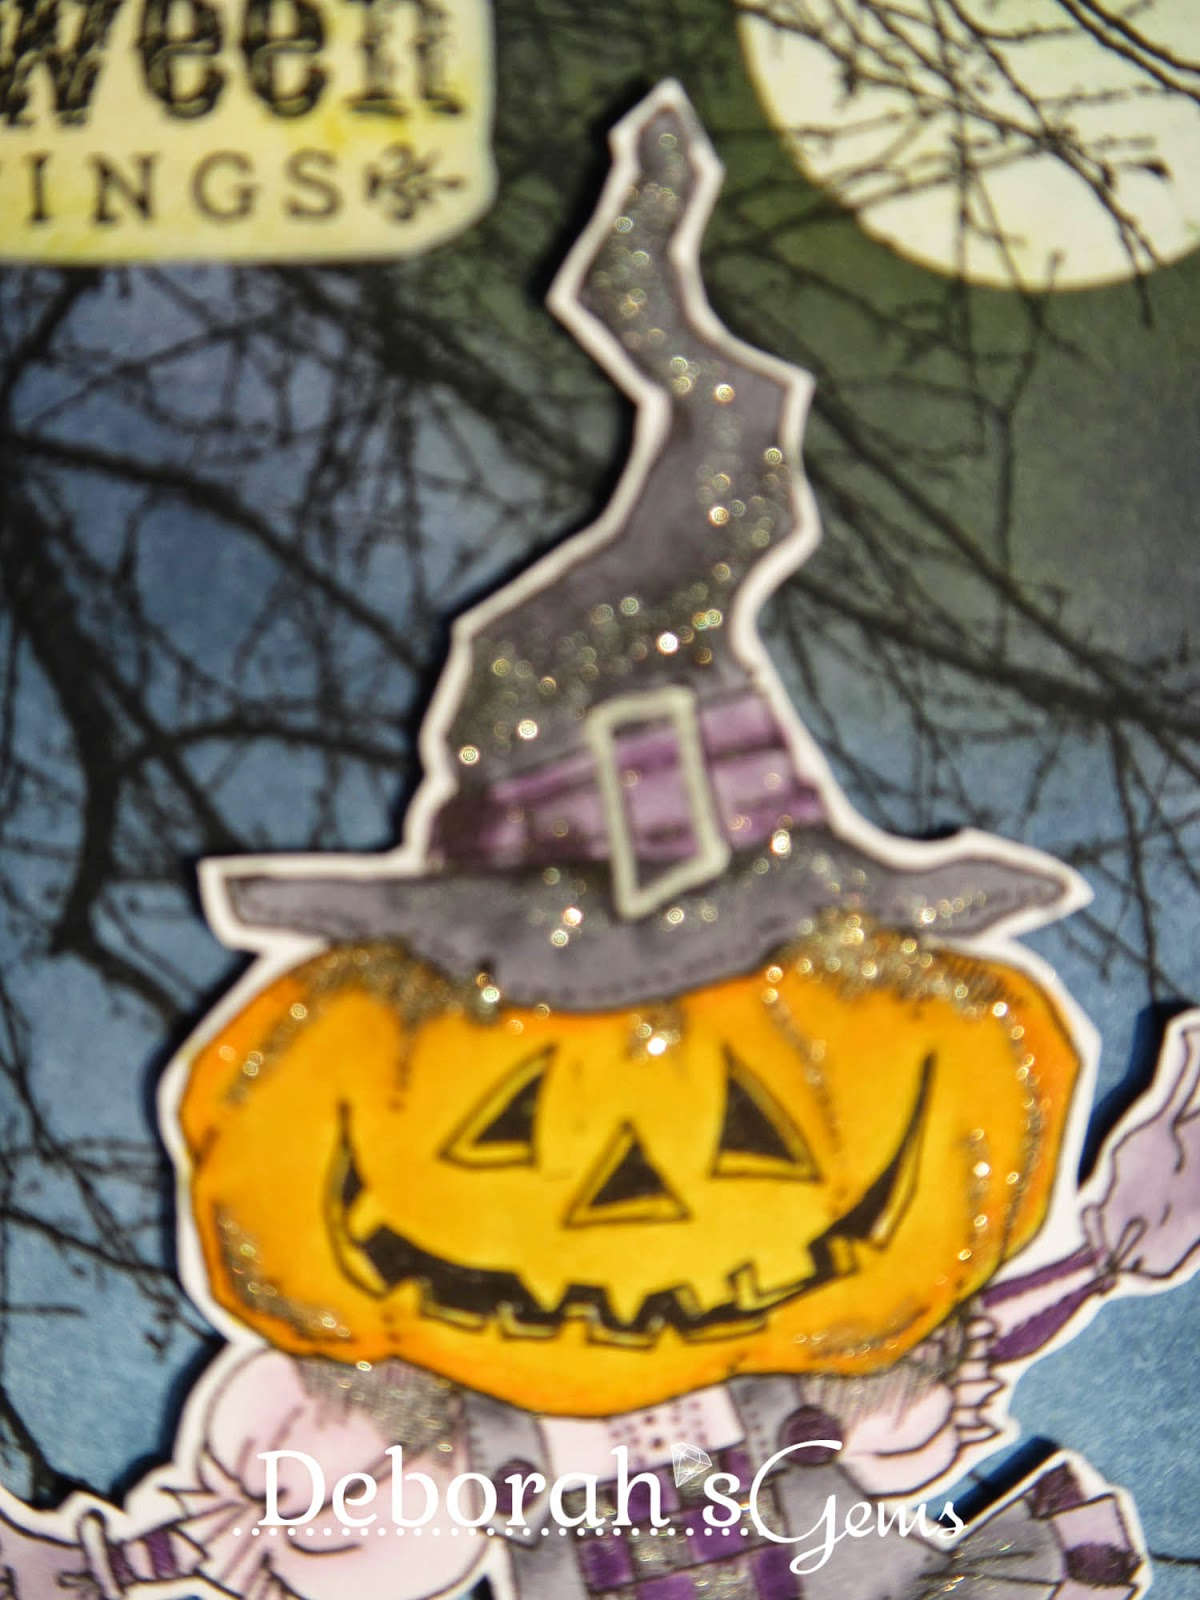 Halloween Greetings detail - photo by Deborah Frings - Deborah's Gems